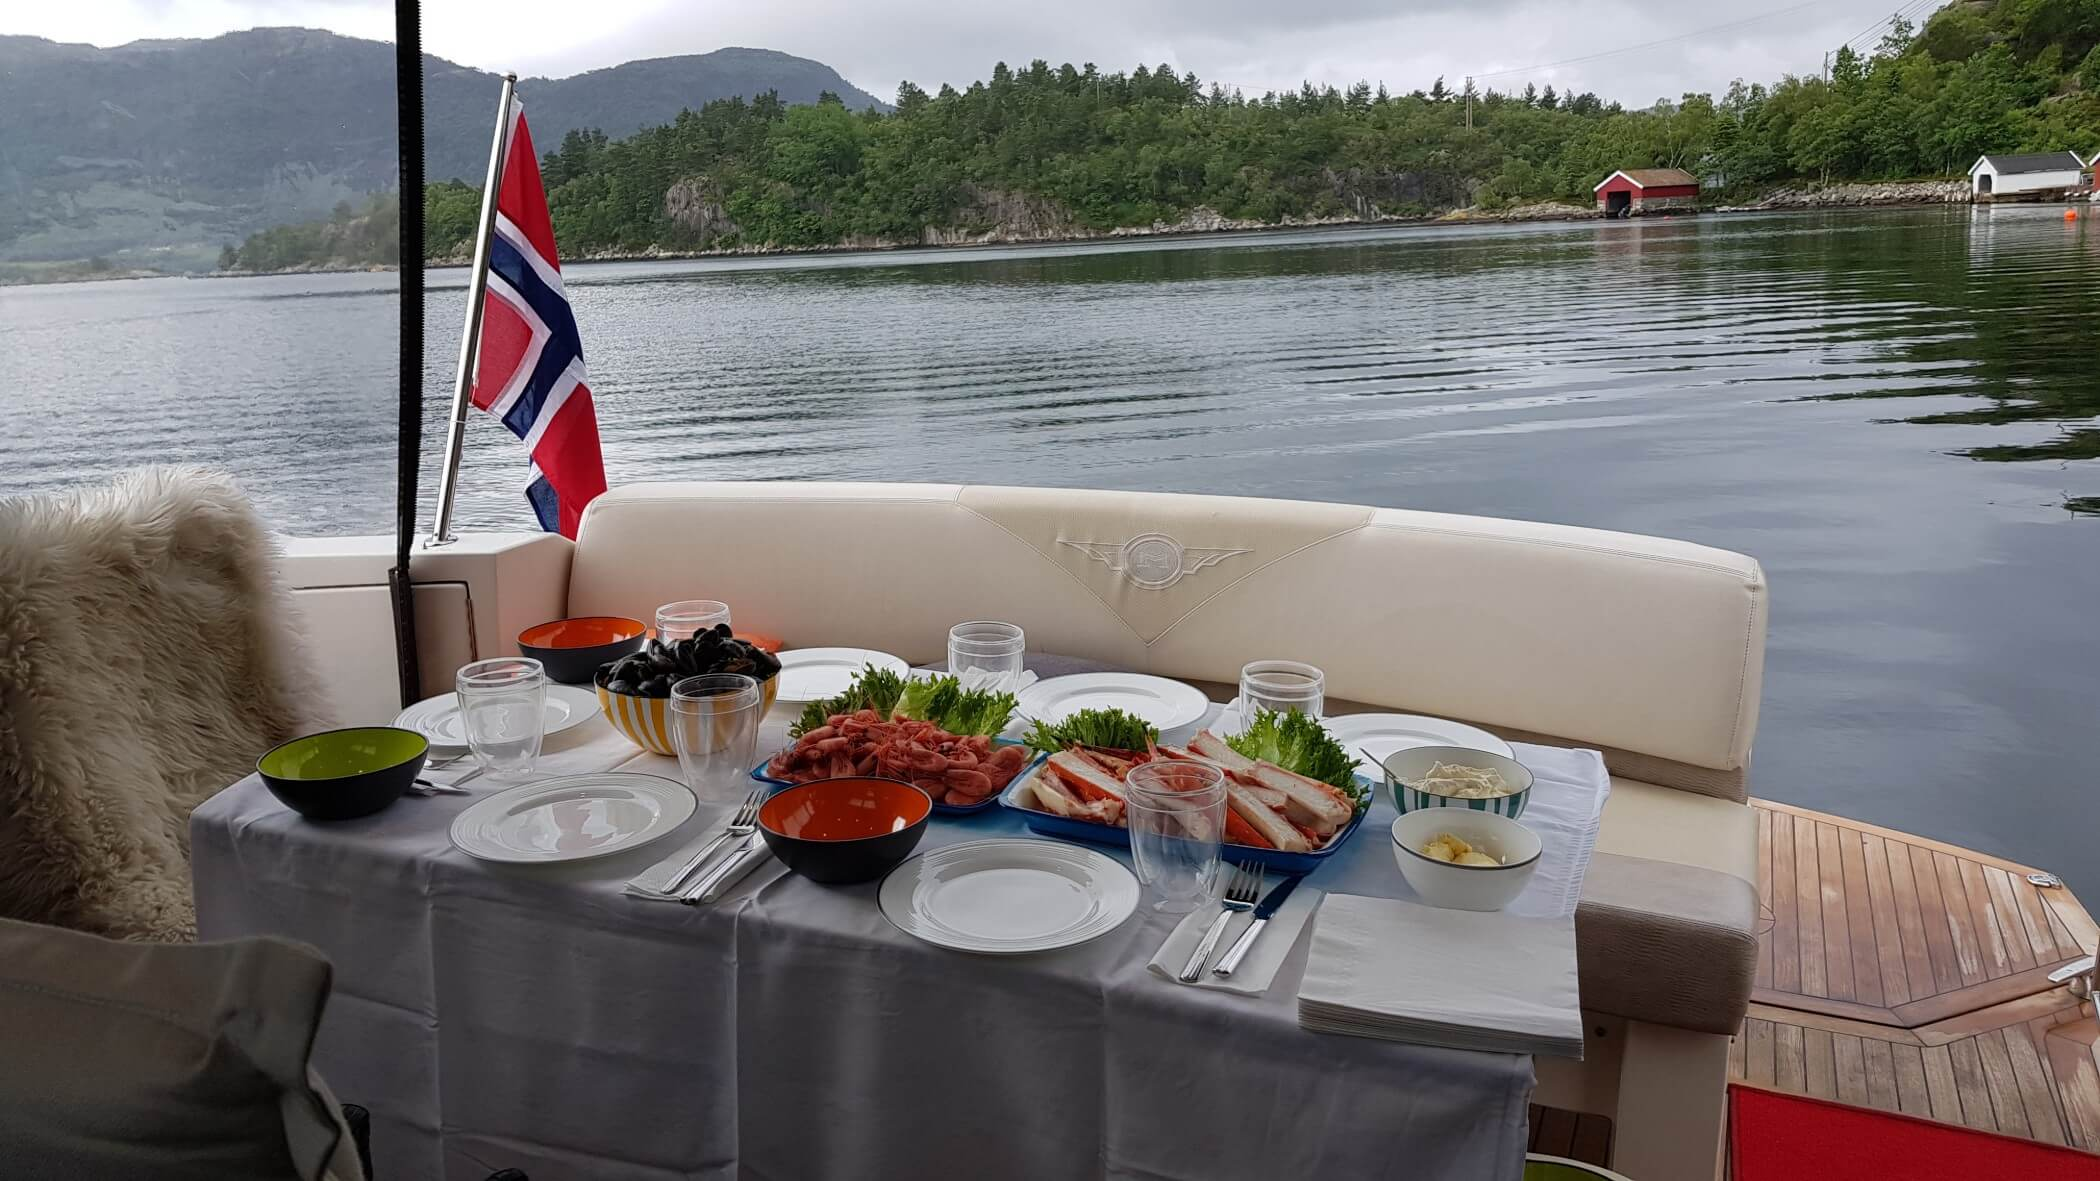 Food-PrivateCruise-Stavanger-1-Seafood-Frech-Strimps-blu-mussels-and-king-Crab.